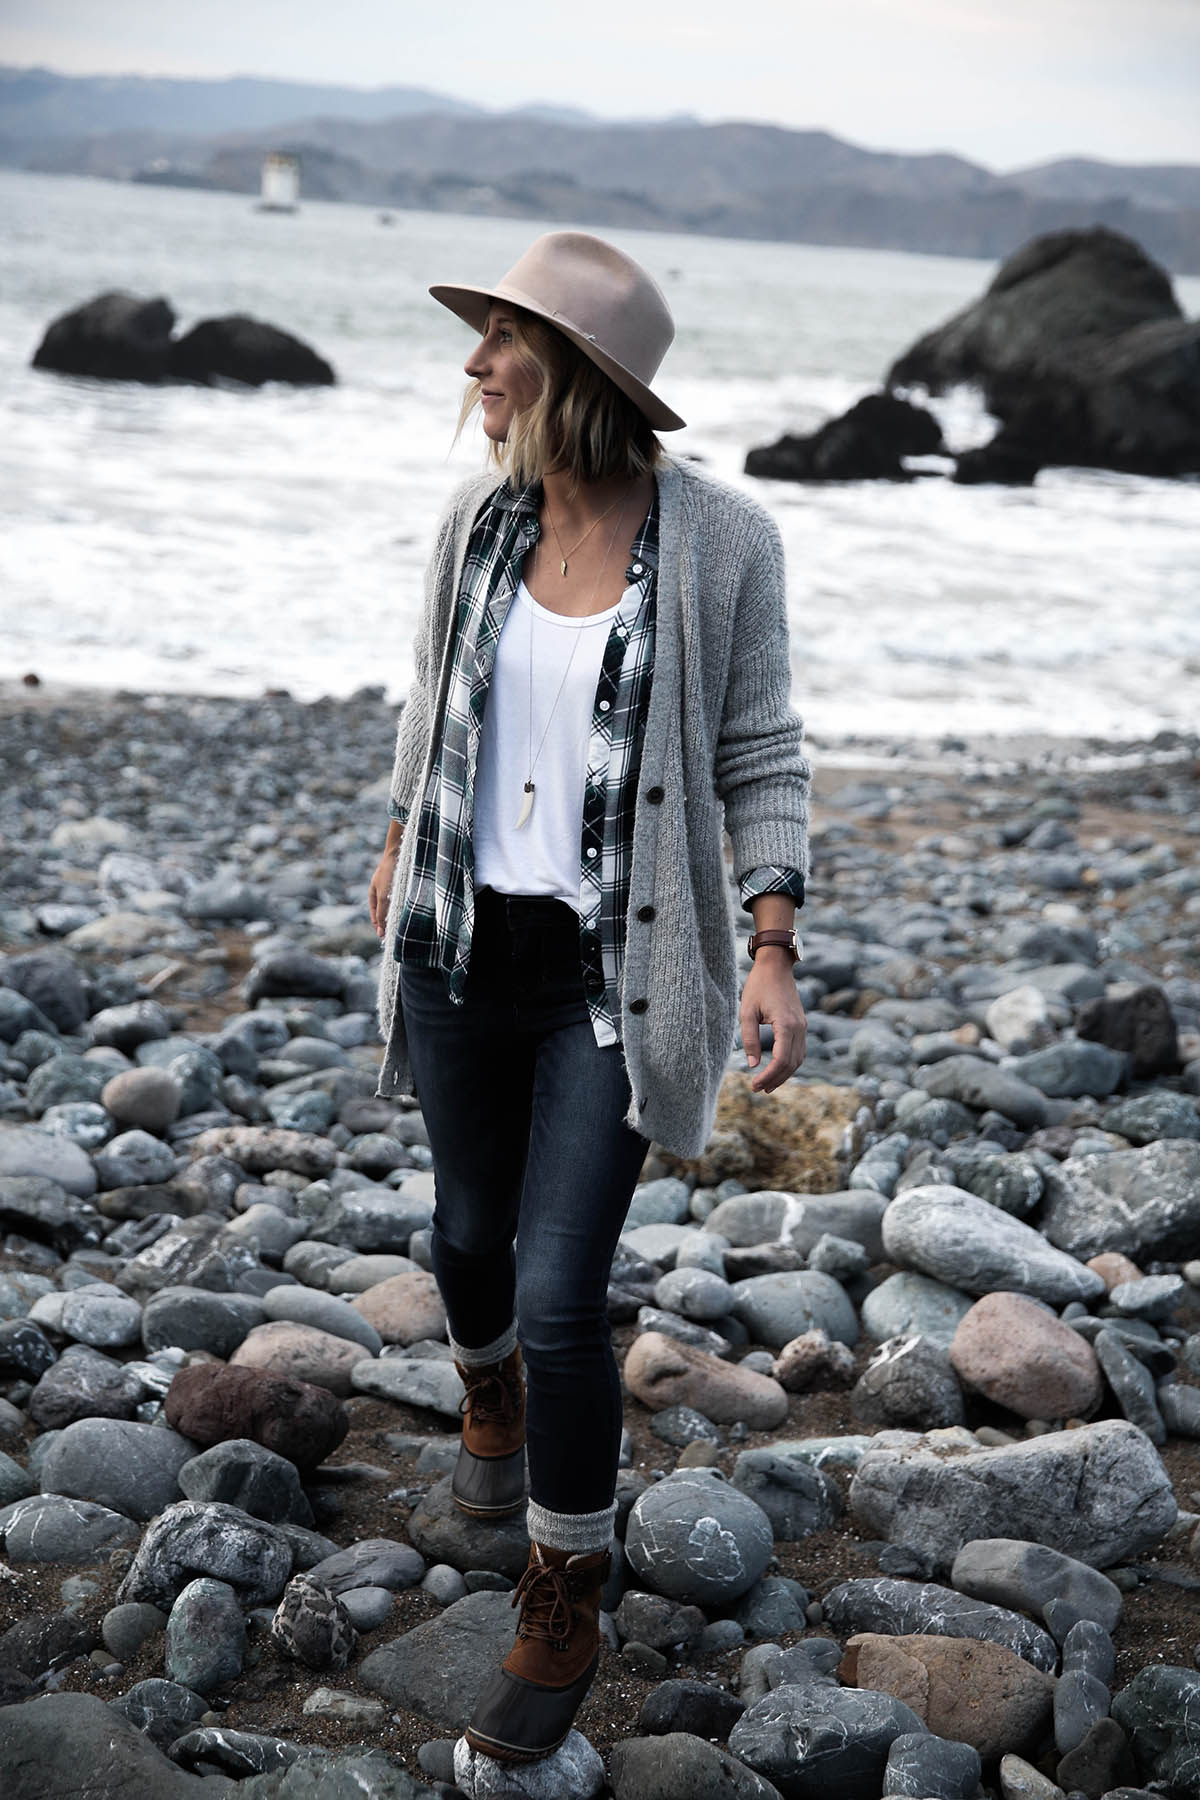 grey cardigan with plaid shirt, old navy jeans, and sorel boots with socks